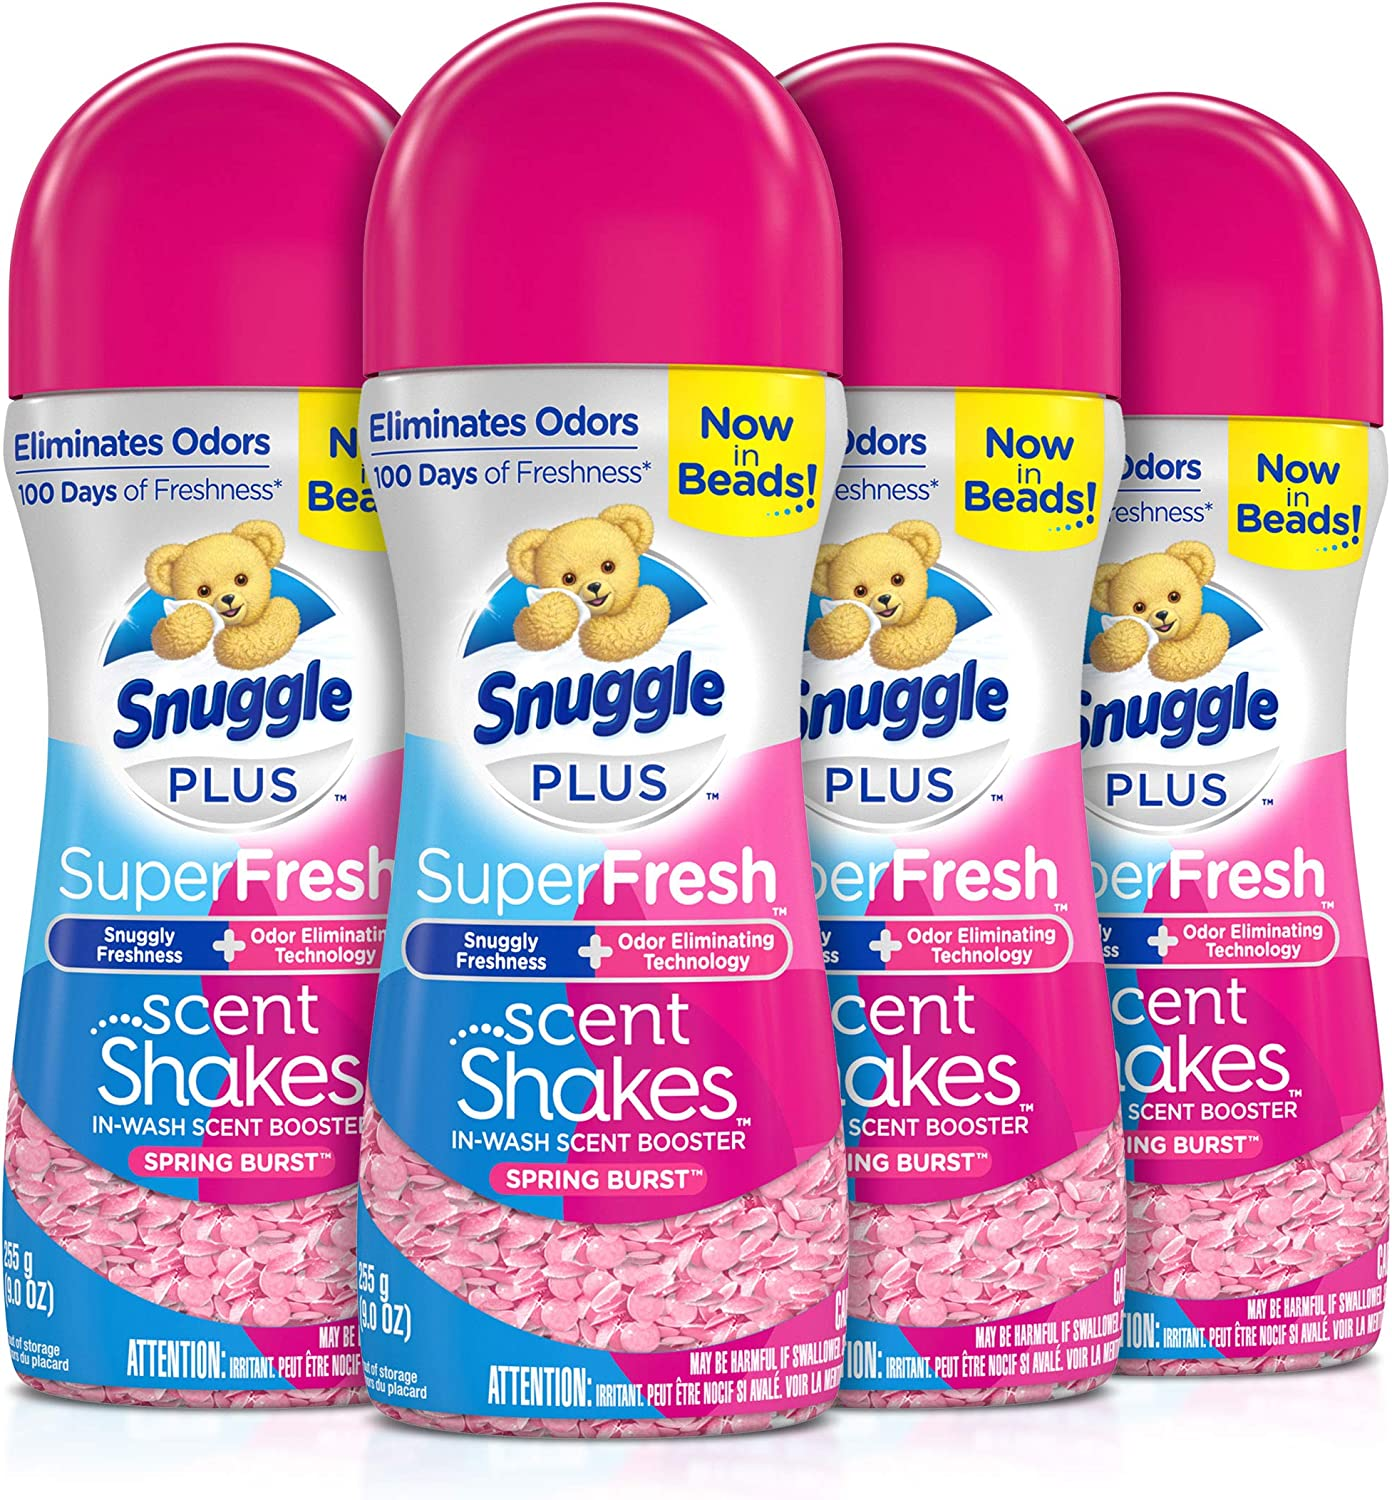 Snuggle Scent Shakes in-Wash Scent Booster Beads, SuperFresh Spring Burst, 9 Ounce (Pack of 4)